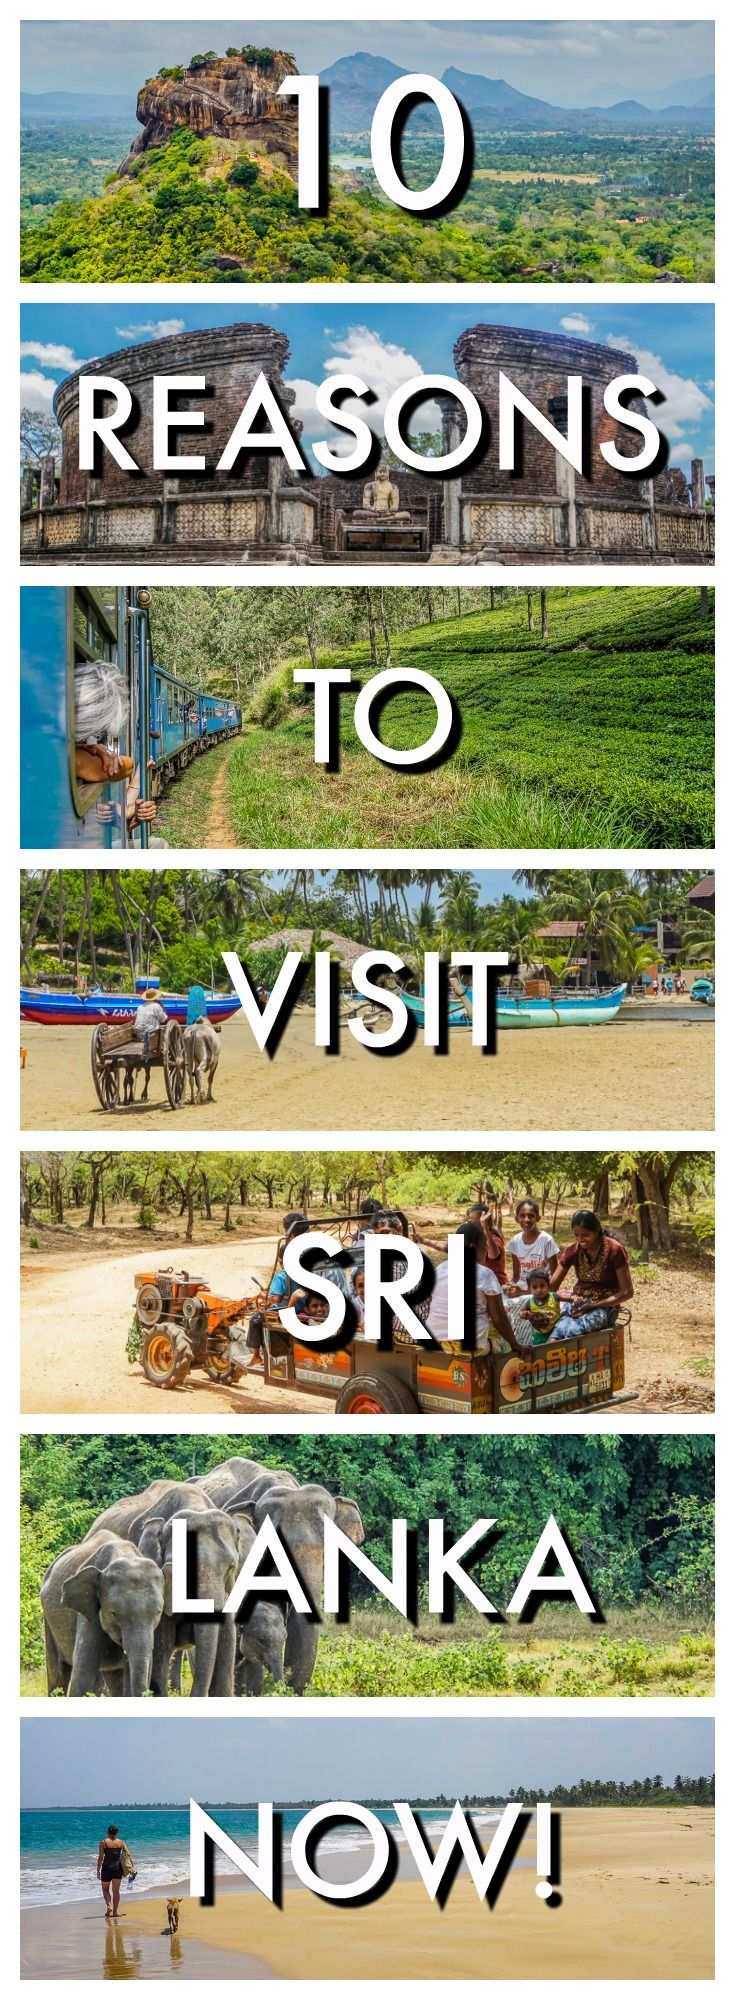 Sri Lanka is a diverse and tropical island below the southern tip of India. If you need some convincing to go, heres our 10 reasons to visit Sri Lanka.